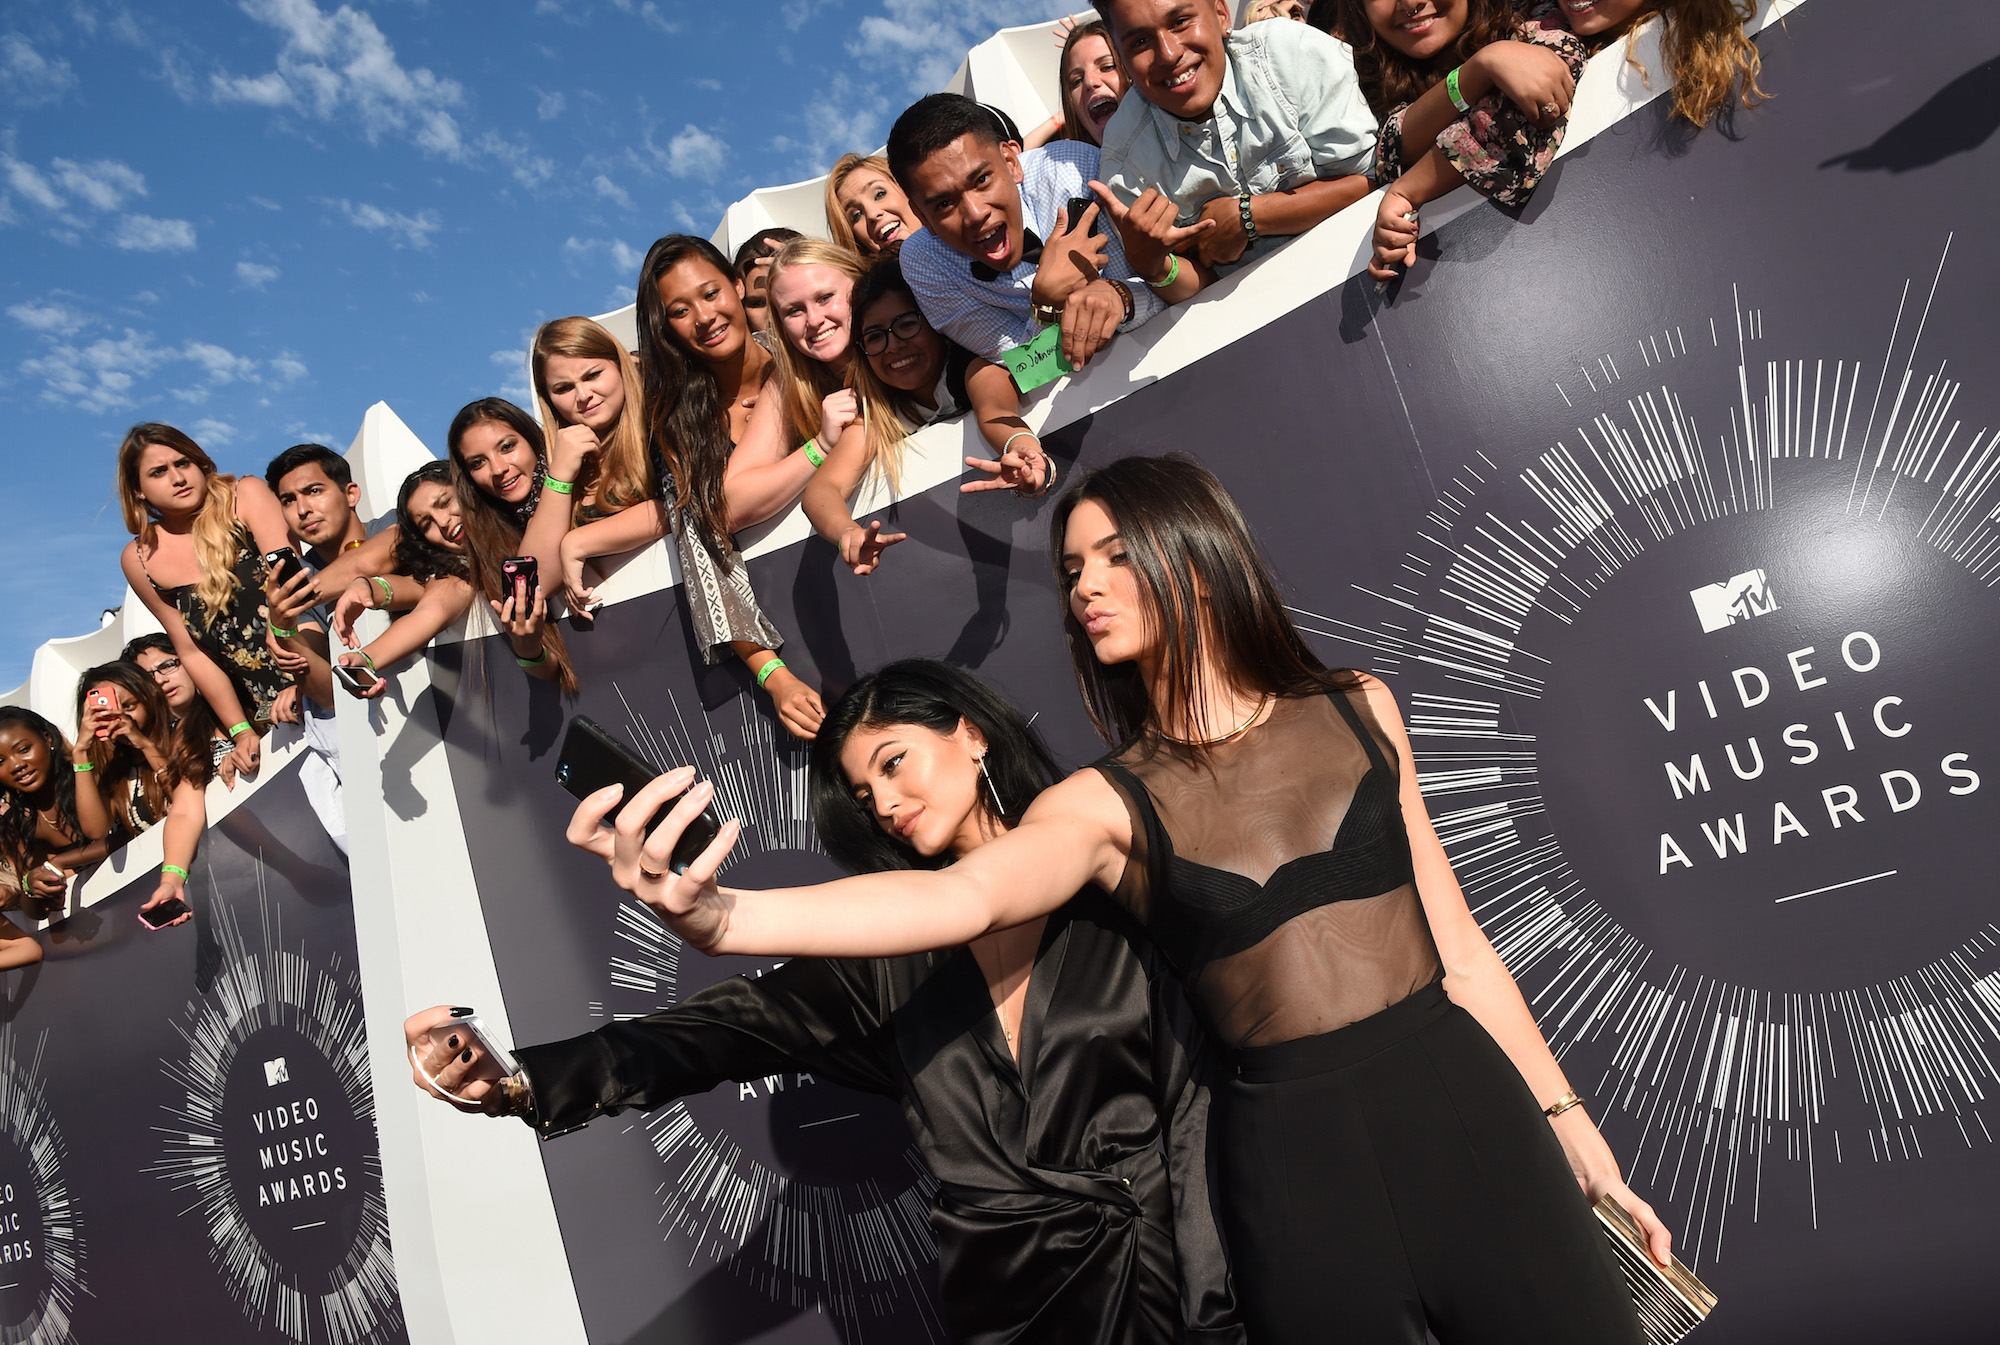 Kendall and Kylie Hope Their New Line Eclipses Their Celebrity